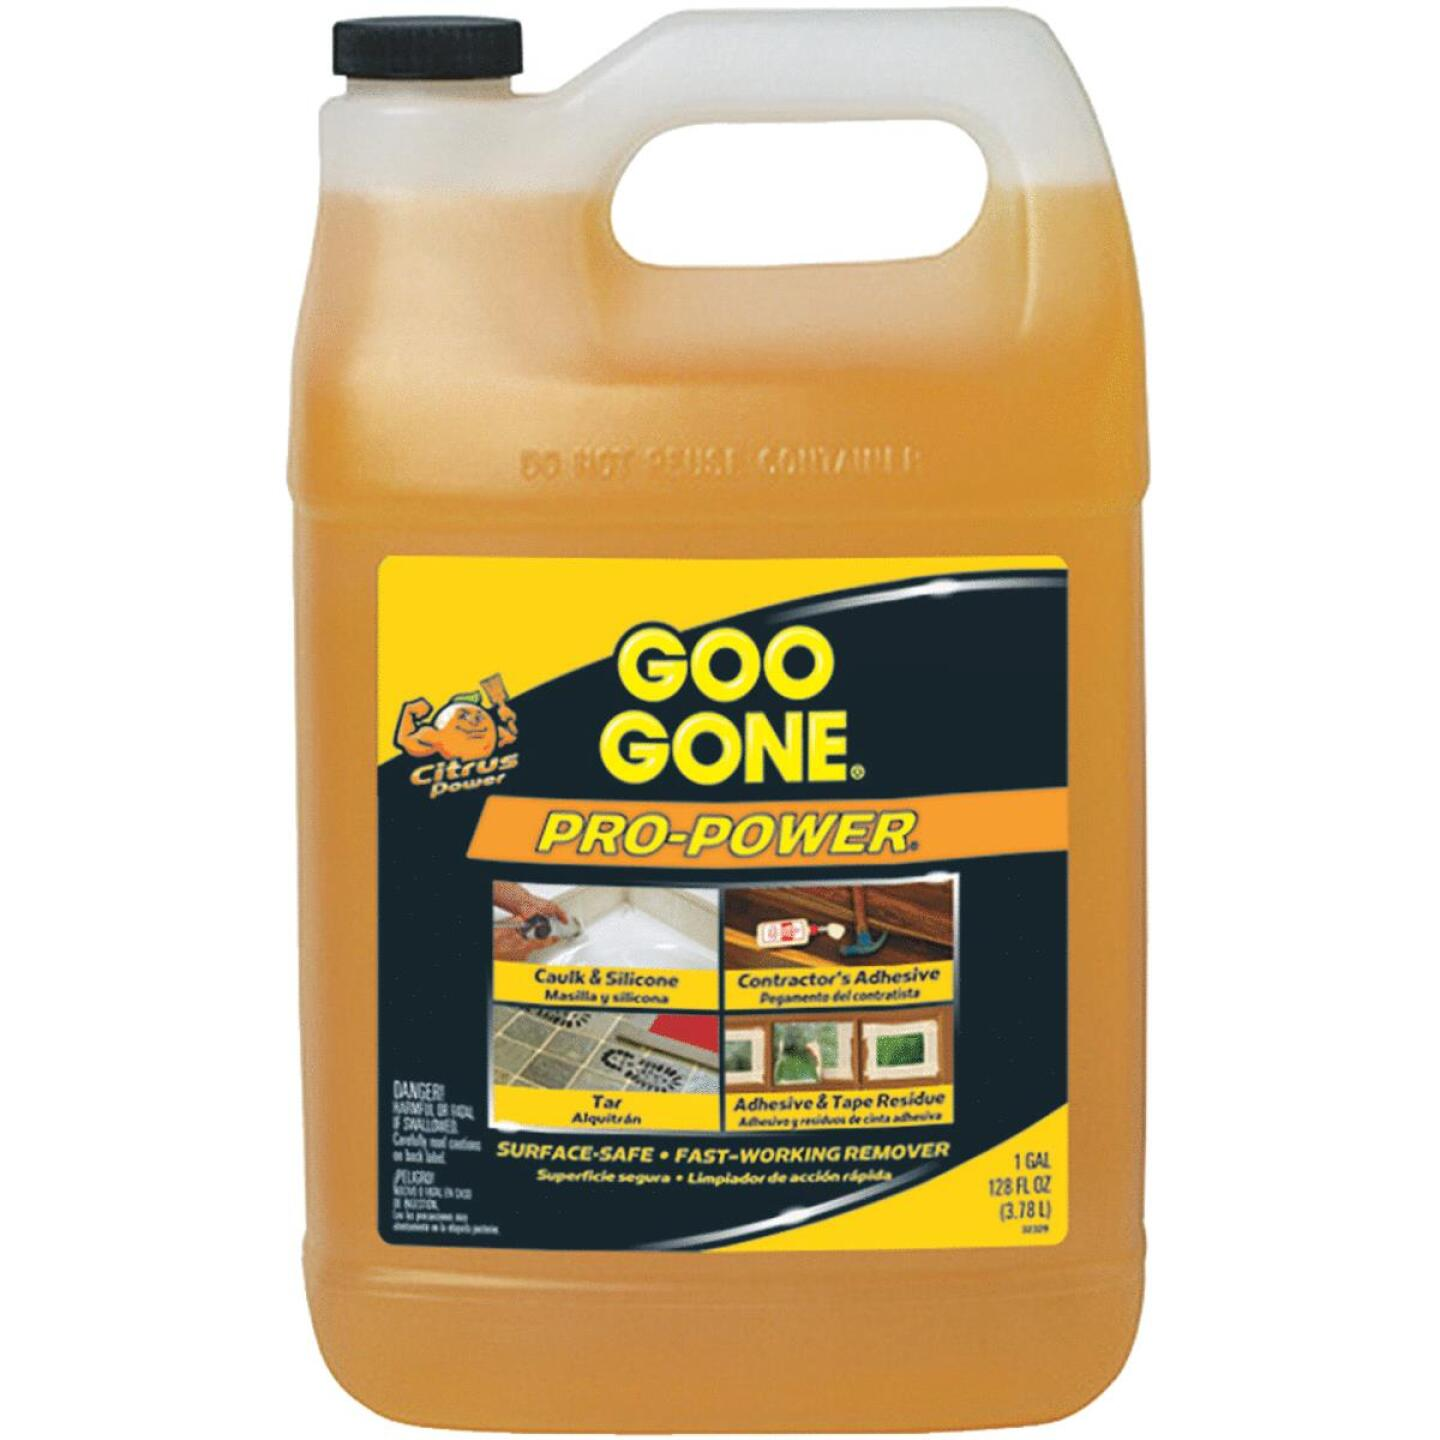 Goo Gone 1 Gal. Pro-Power Adhesive Remover Image 165